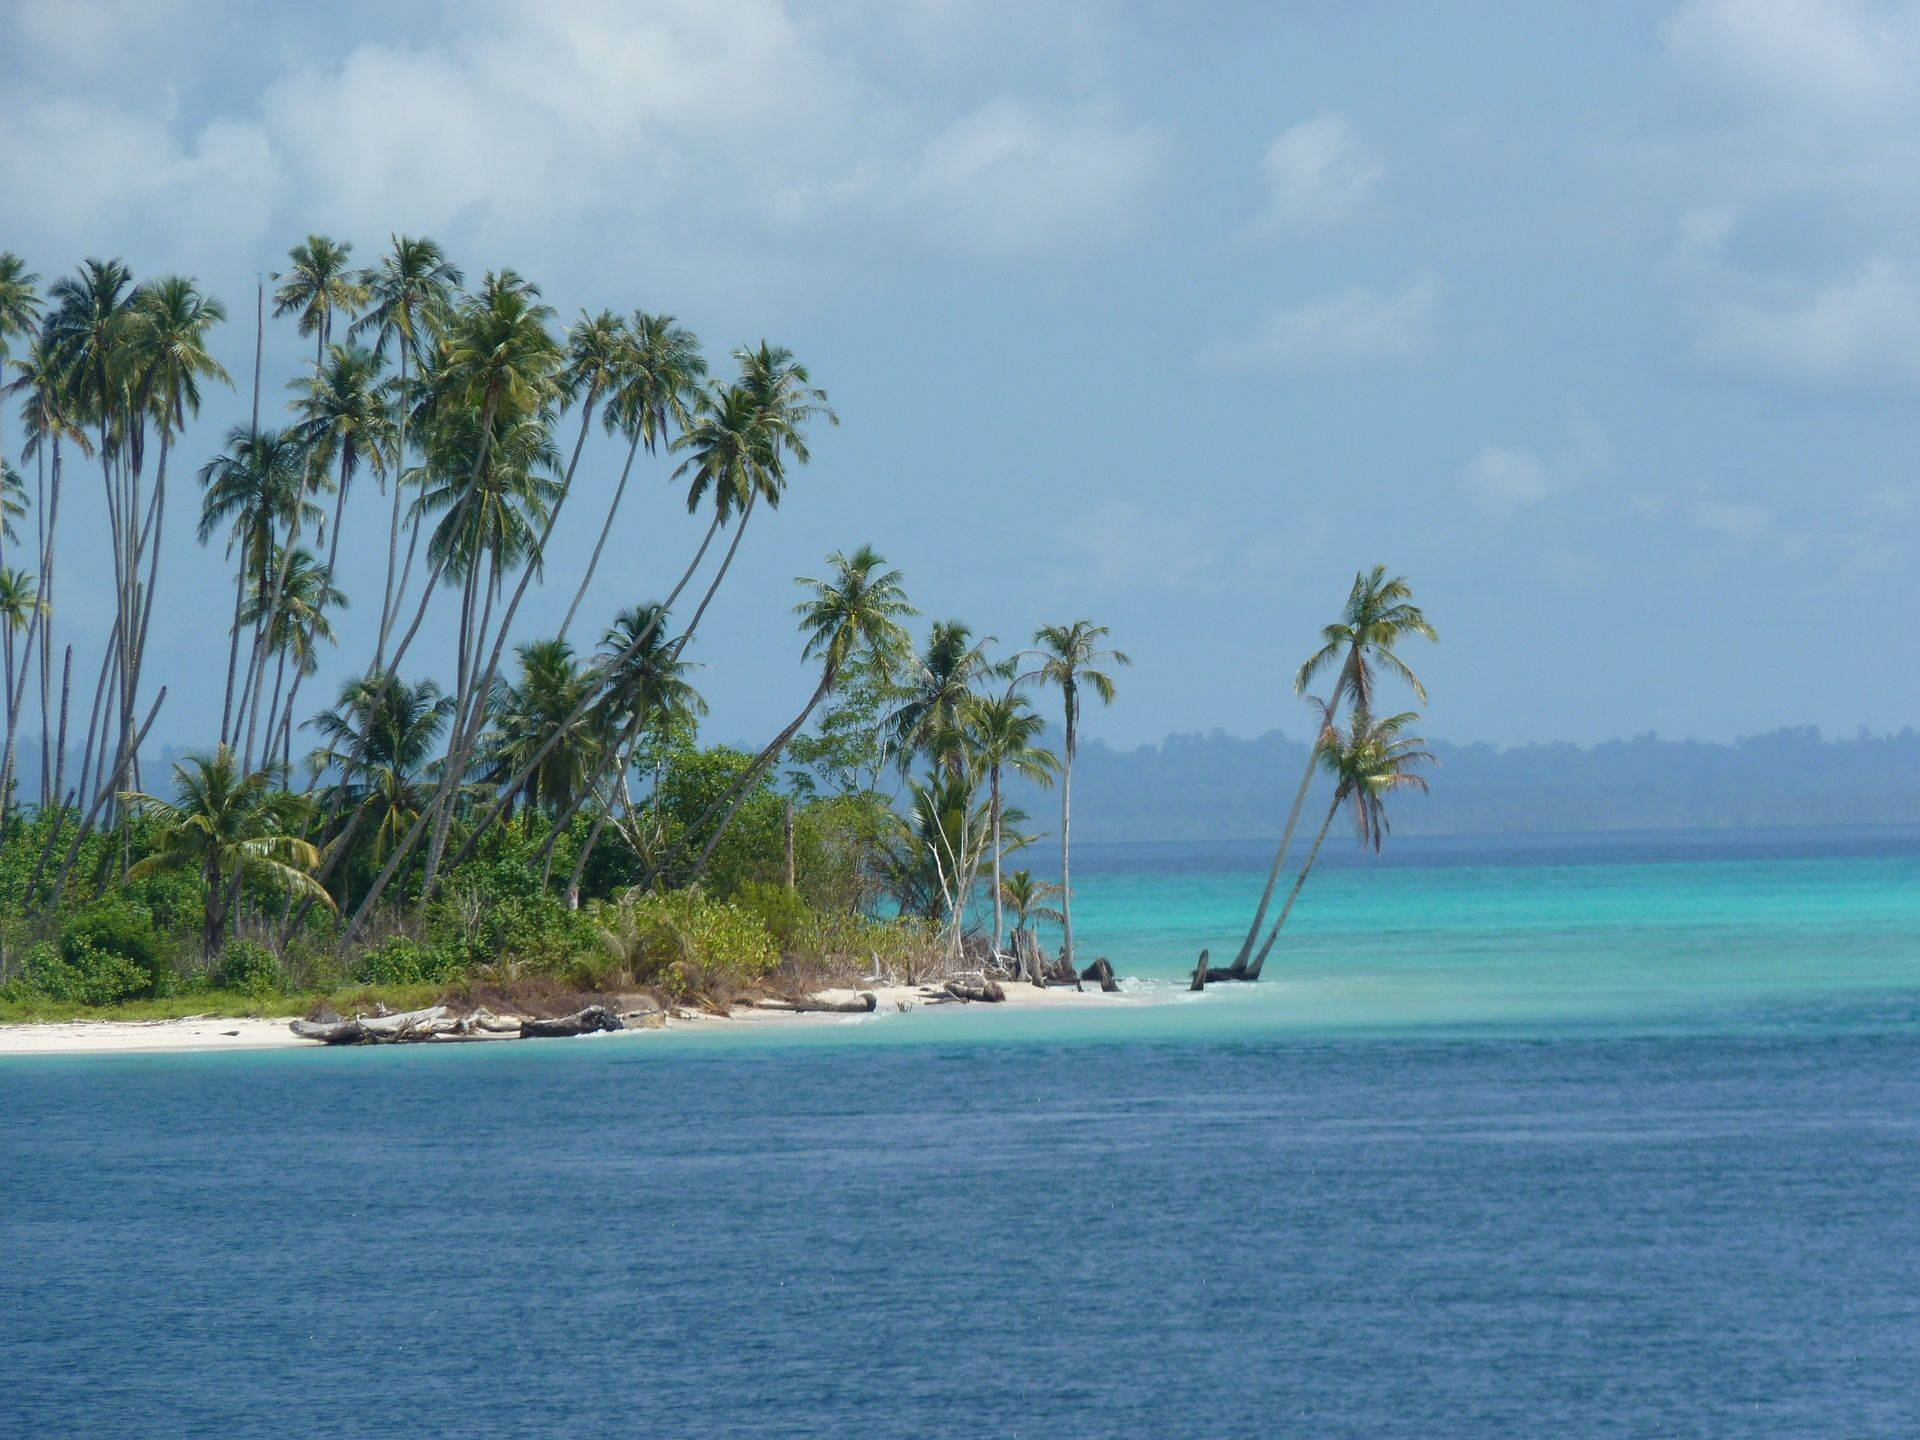 Aceh - Tropical islands